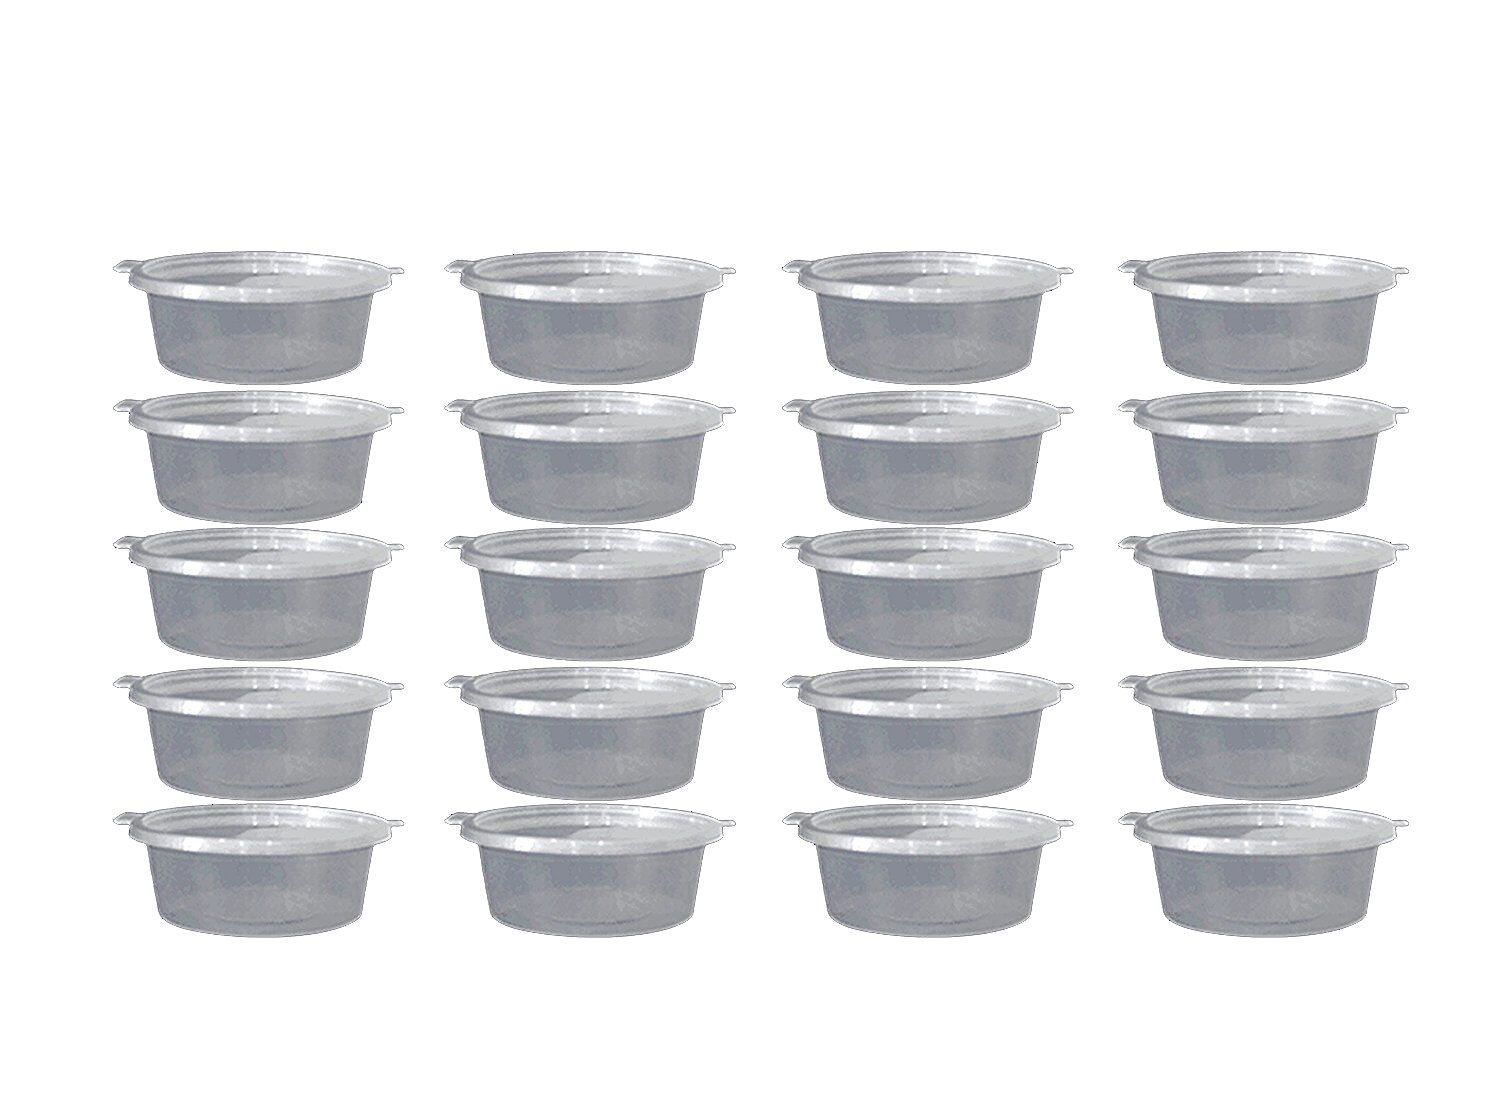 Bestsupplier Storage Containers, 30 Pack Foam Ball Storage Containers with Lids 4 oz